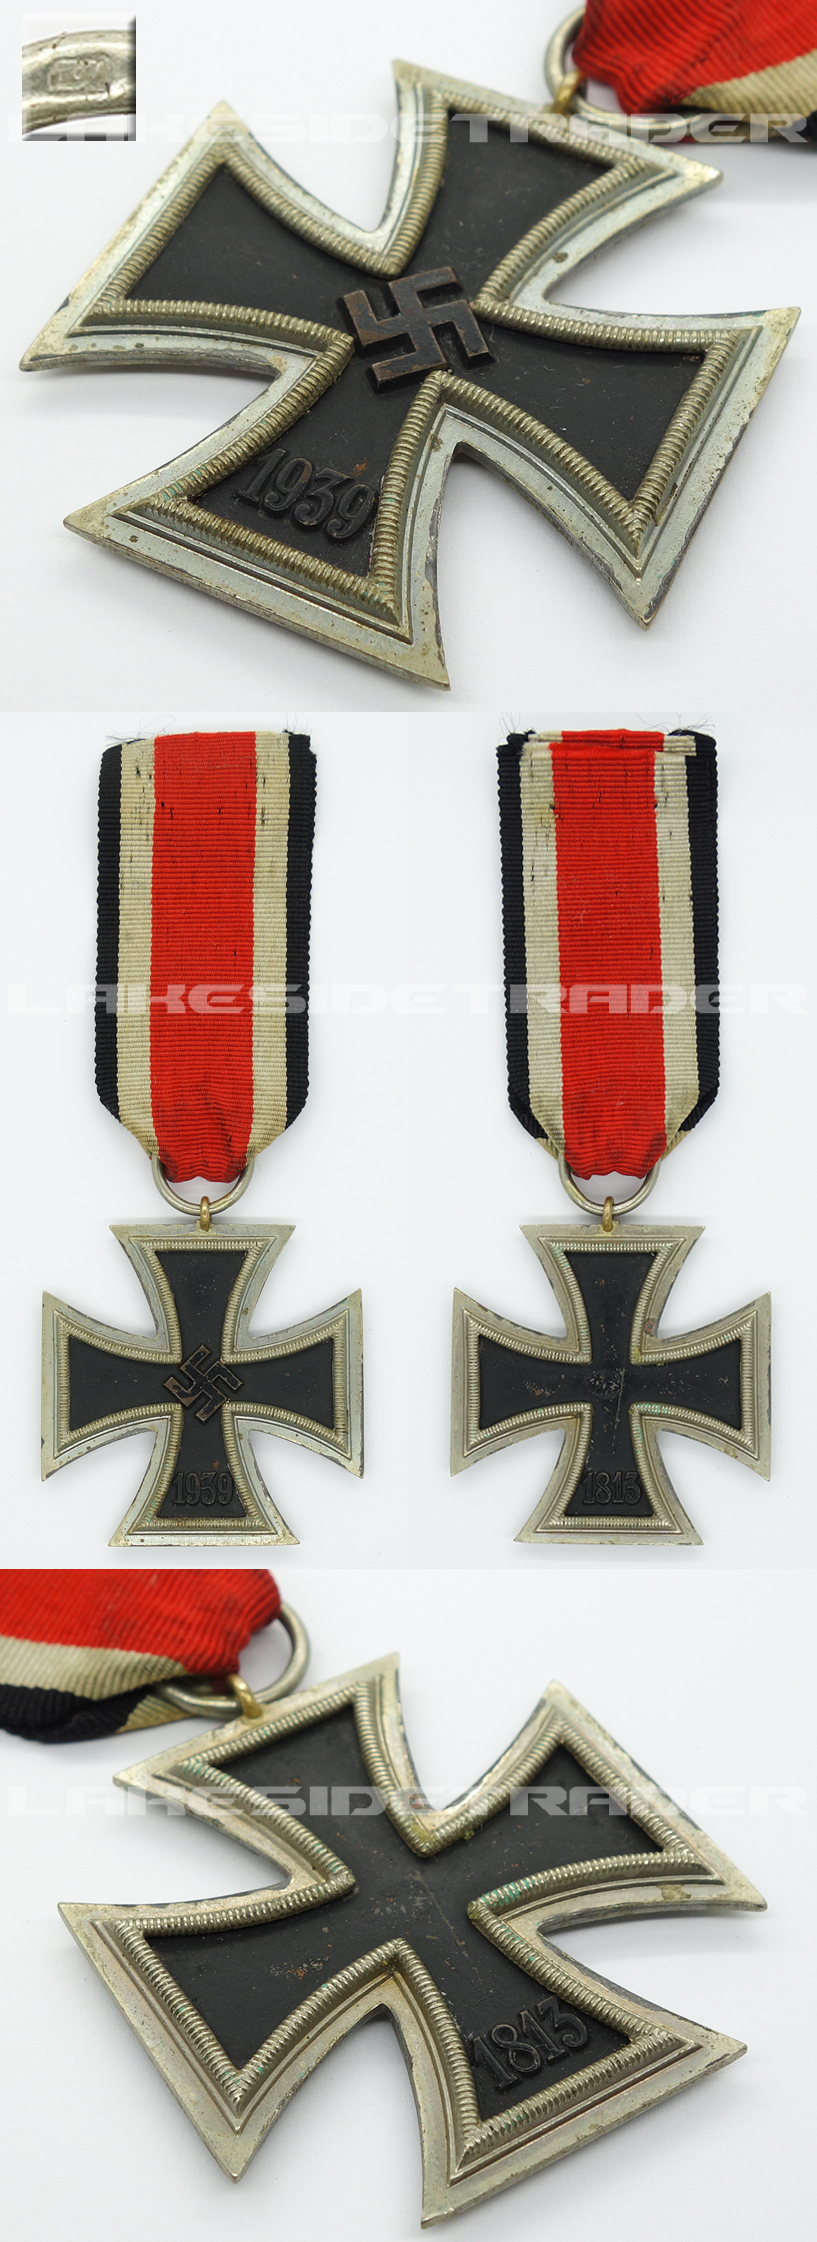 2nd Class Iron Cross by 7